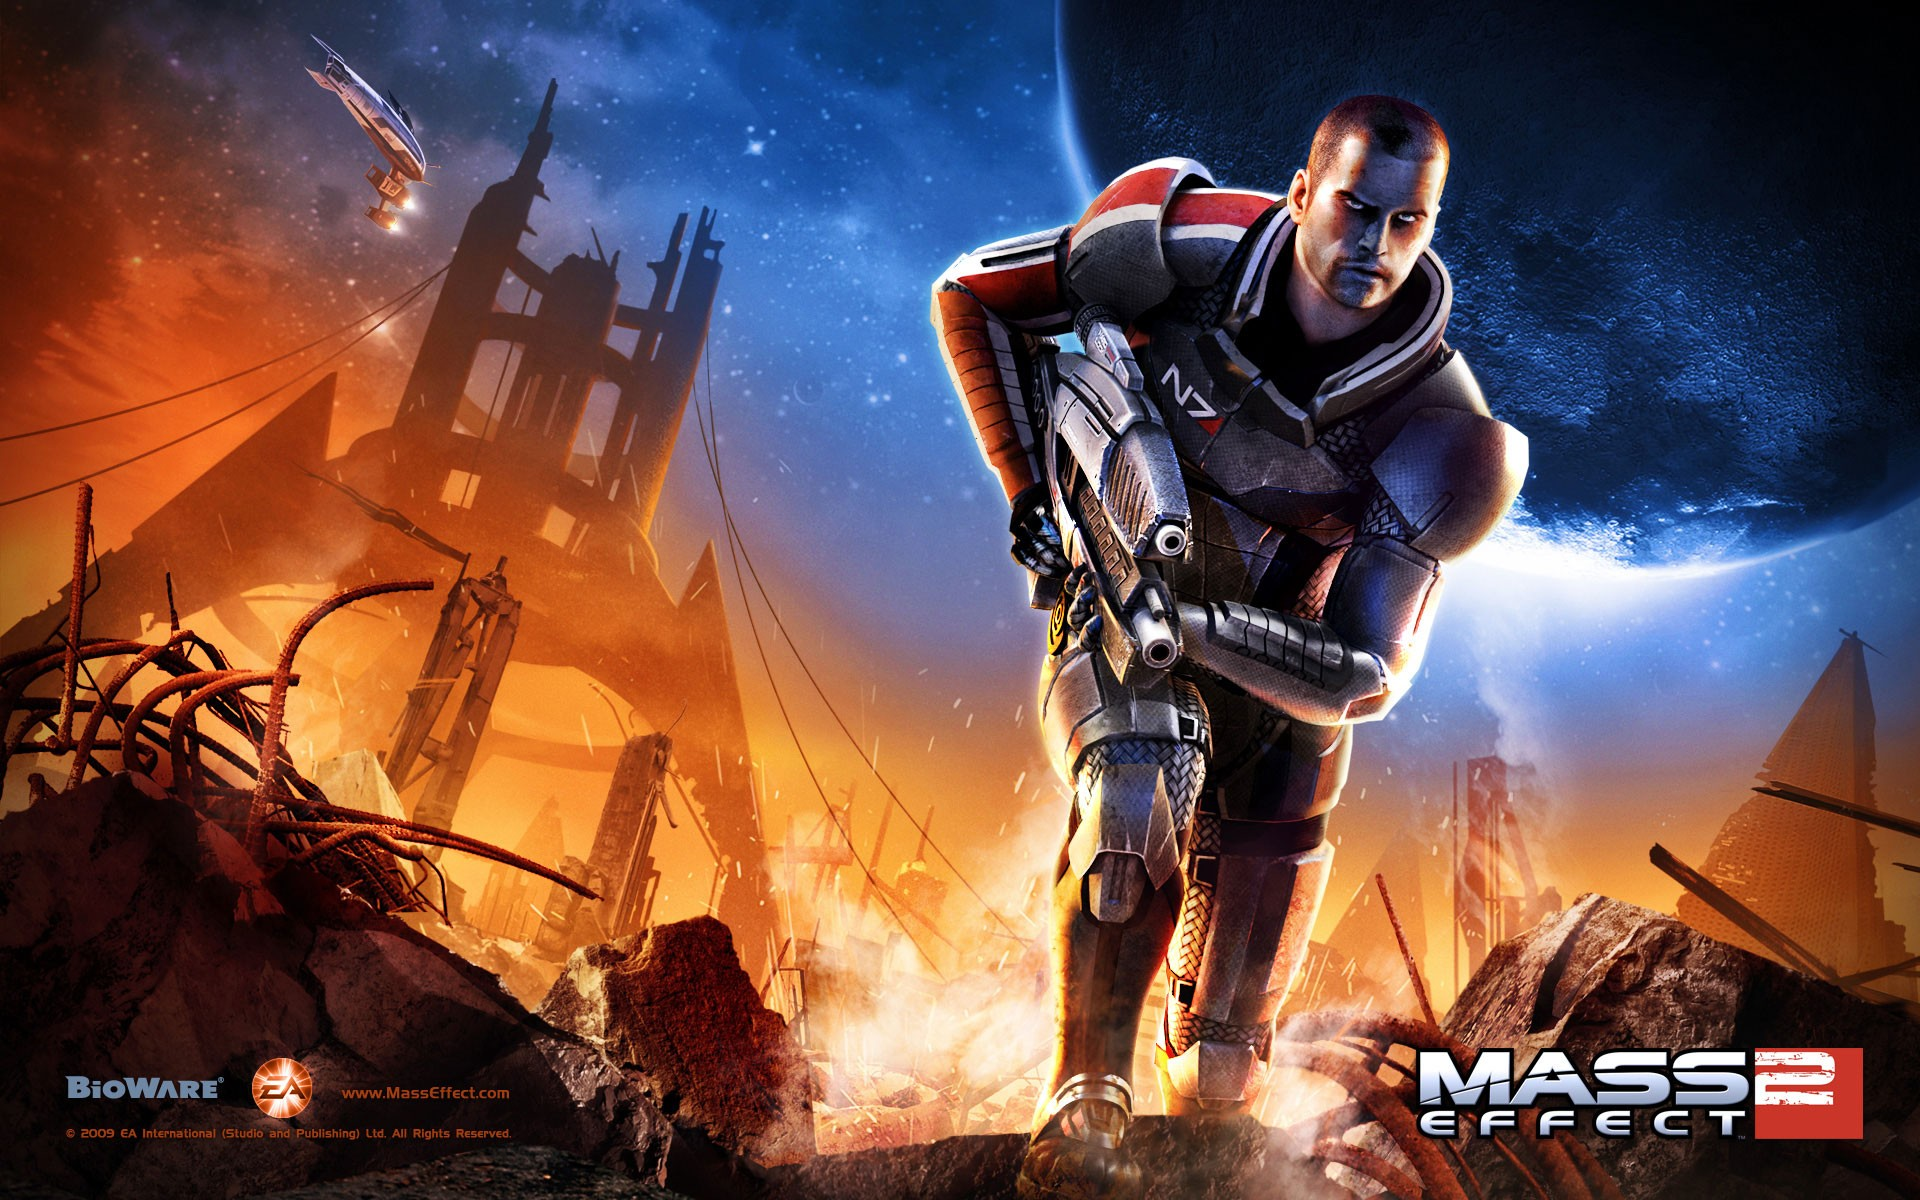 Download Cute Images For Wallpaper Mass Effect 2 Game Wallpapers Hd Wallpapers Id 7006